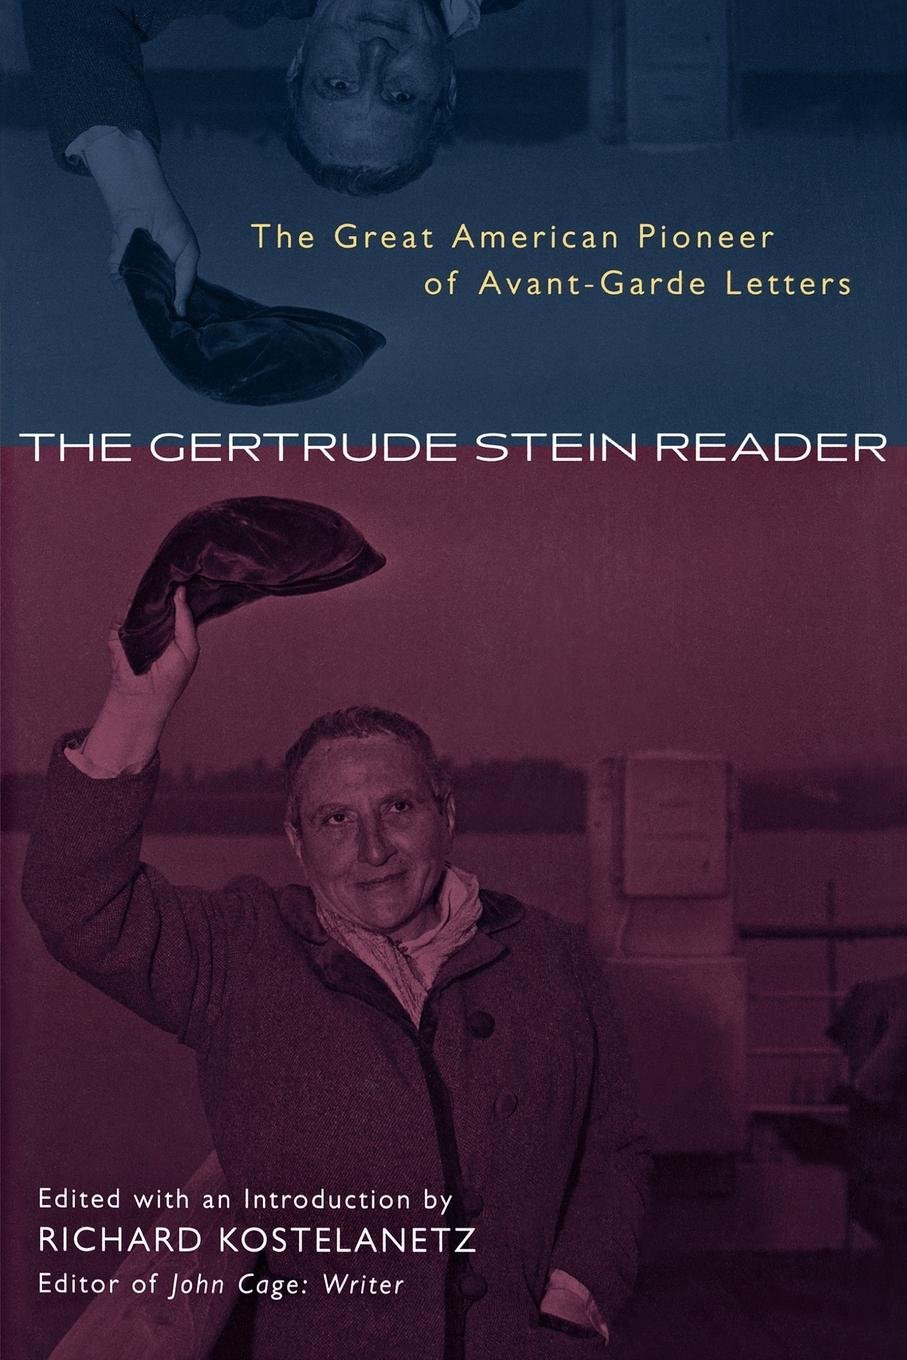 The Gertrude Stein Reader: The Great American Pioneer of Avant-Garde Letters PDF